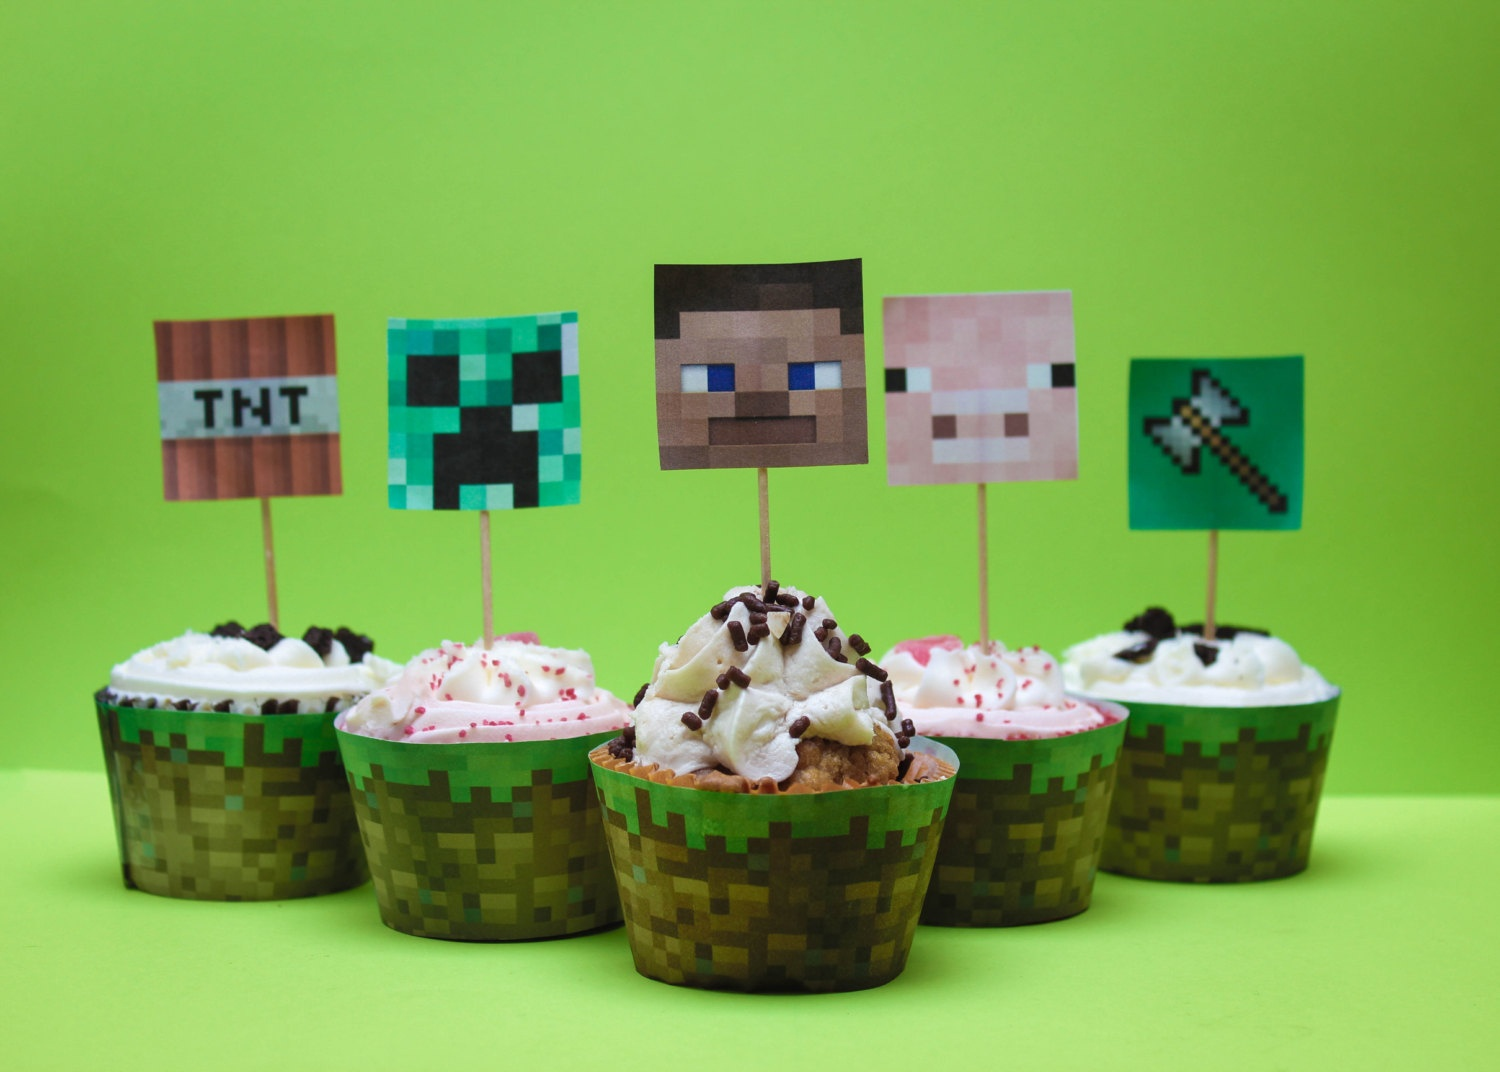 12 Best Photos Of Minecraft Printable Cupcake Wrappers - Free - Free Printable Minecraft Cupcake Toppers And Wrappers